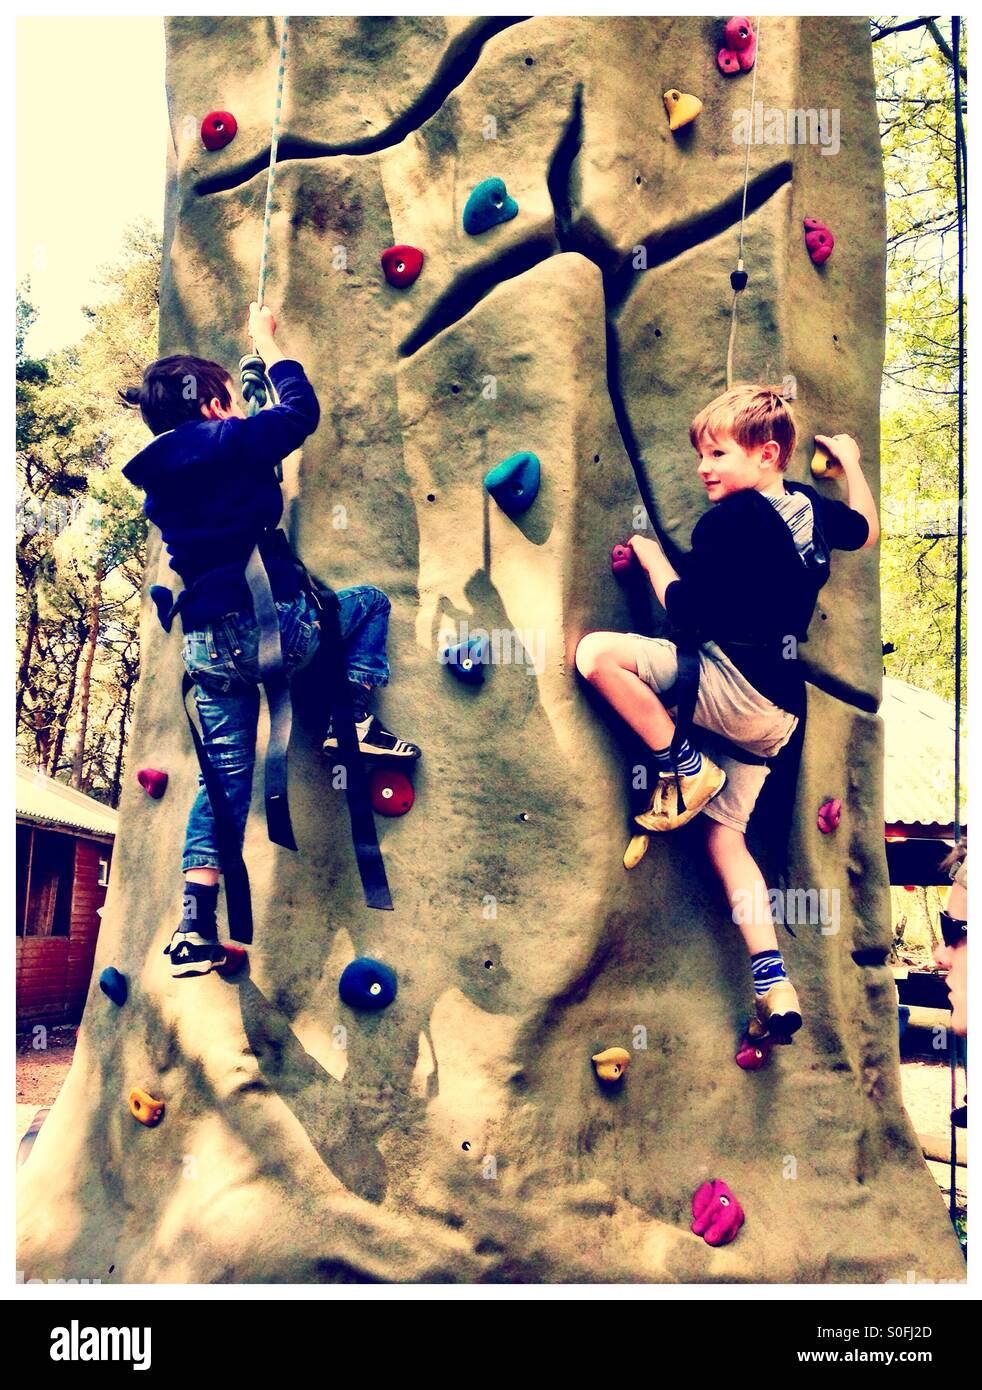 Two boys on a climbing wall. Adventure activity. - Stock Image